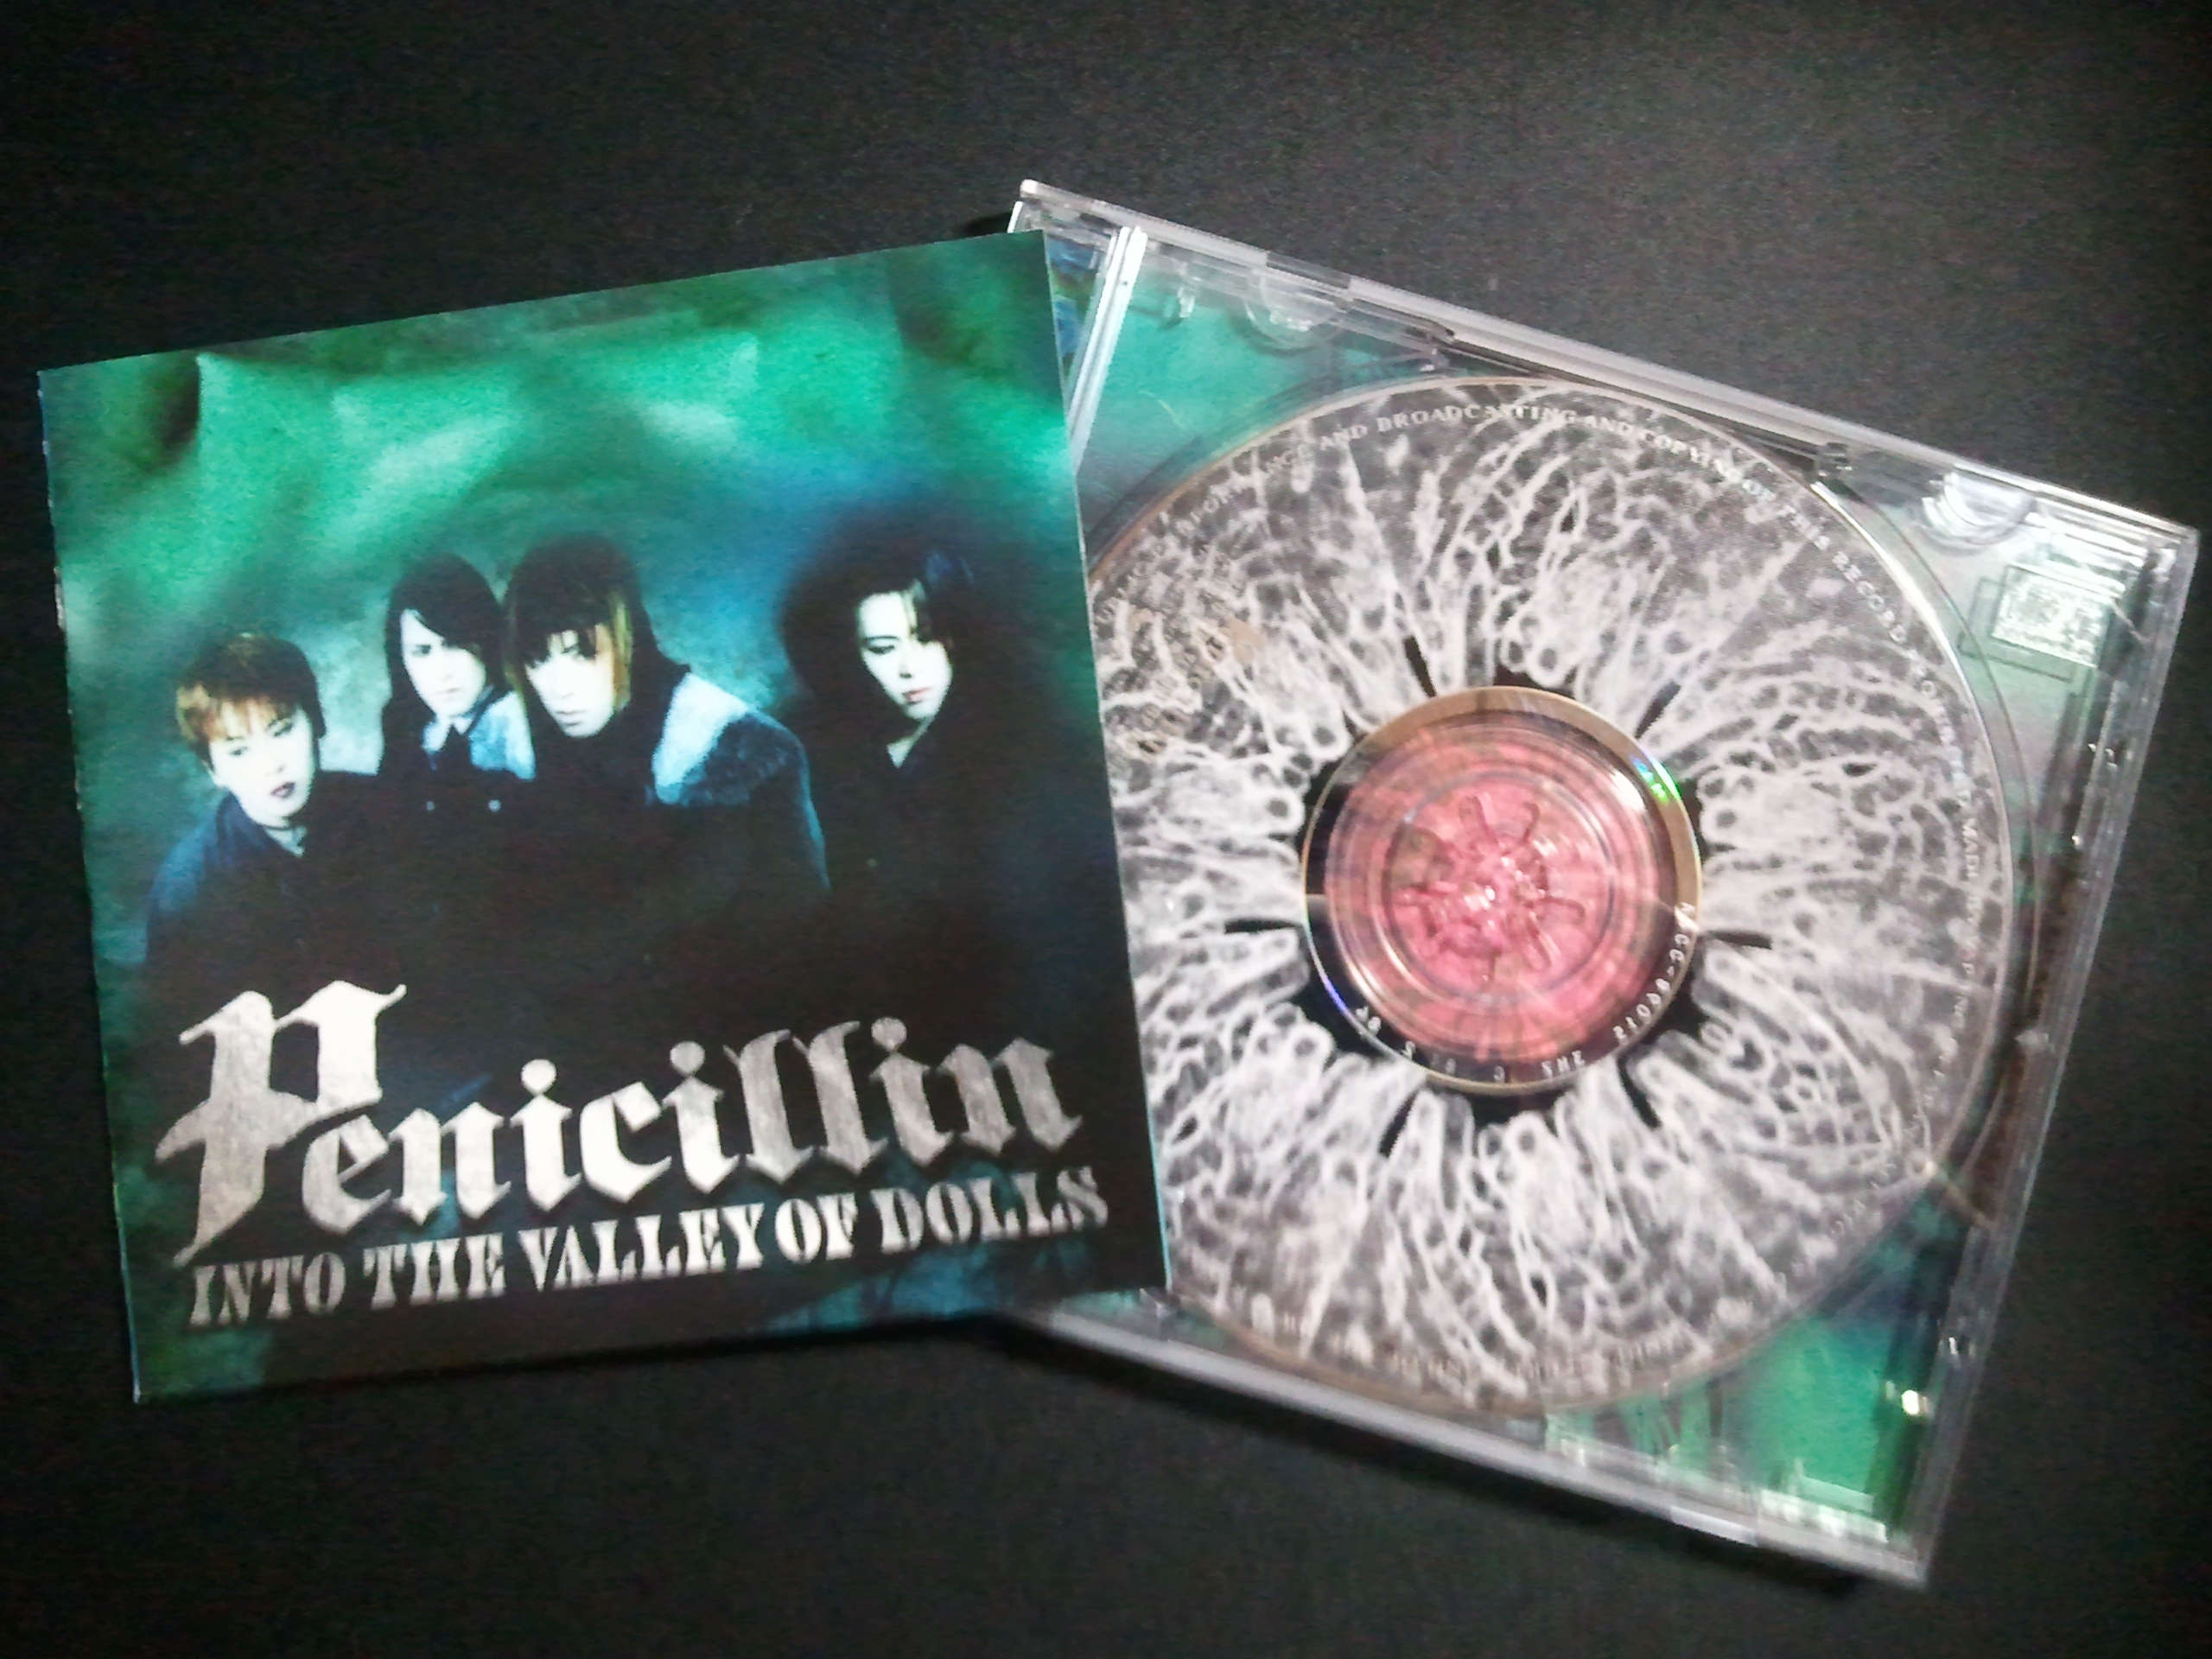 Penicillin into the valley of dolls